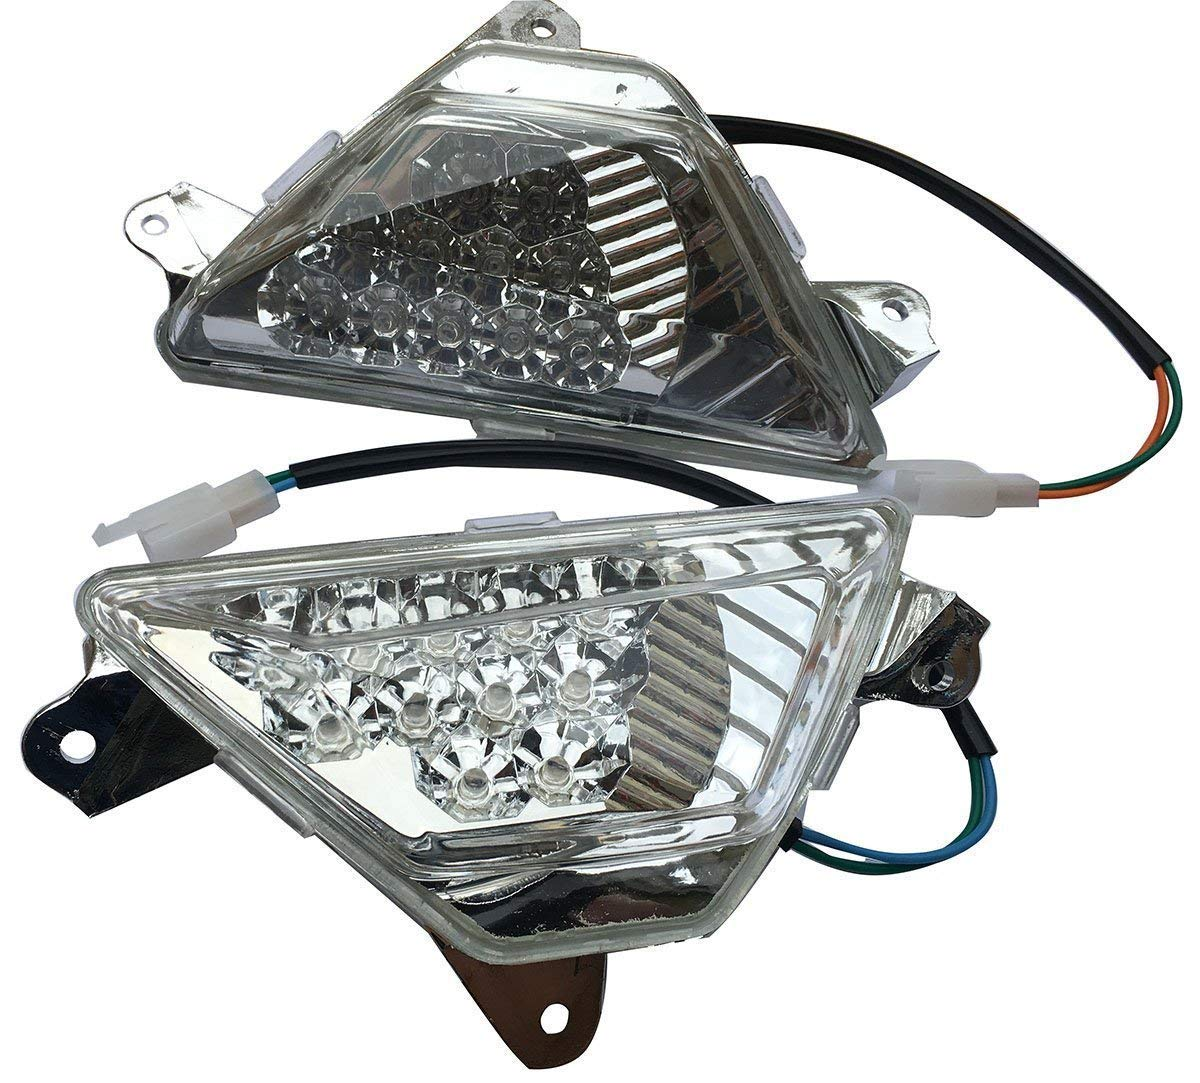 Amazon.com: MotorToGo LED Front Turn Signals Assembly ...